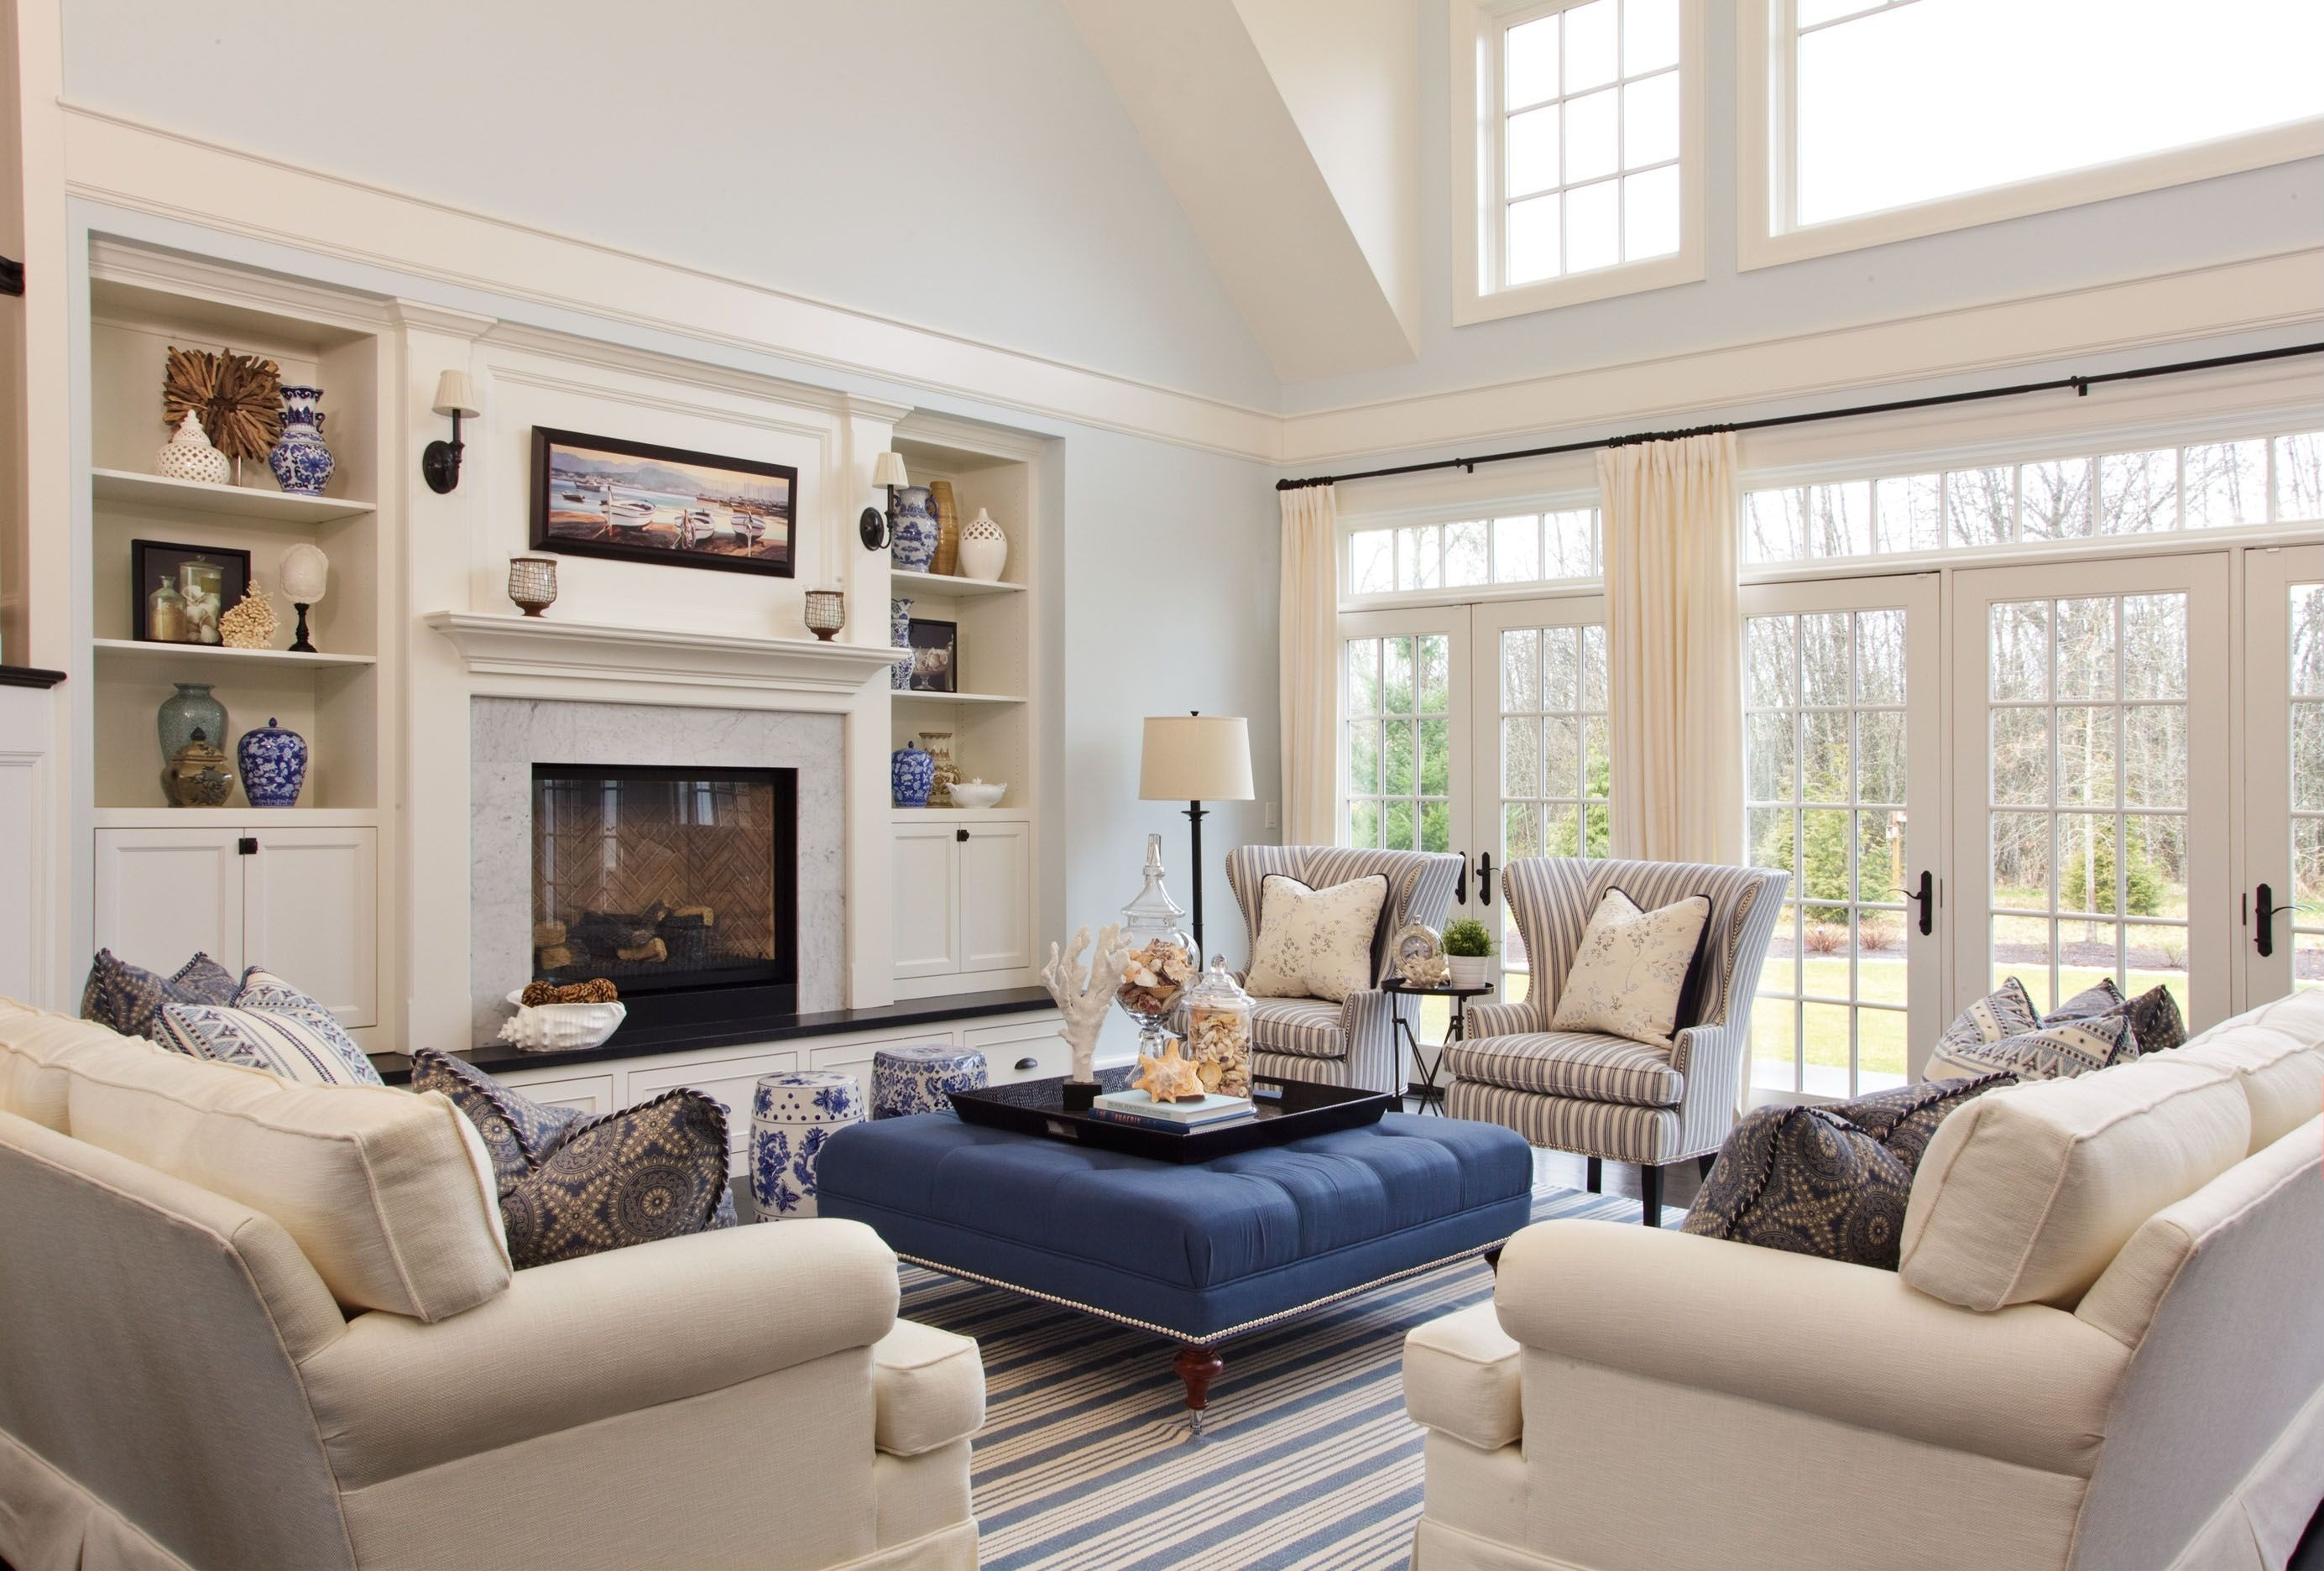 Interior Design Tips Learn How To Make Your Home Look Ger You Can Visit